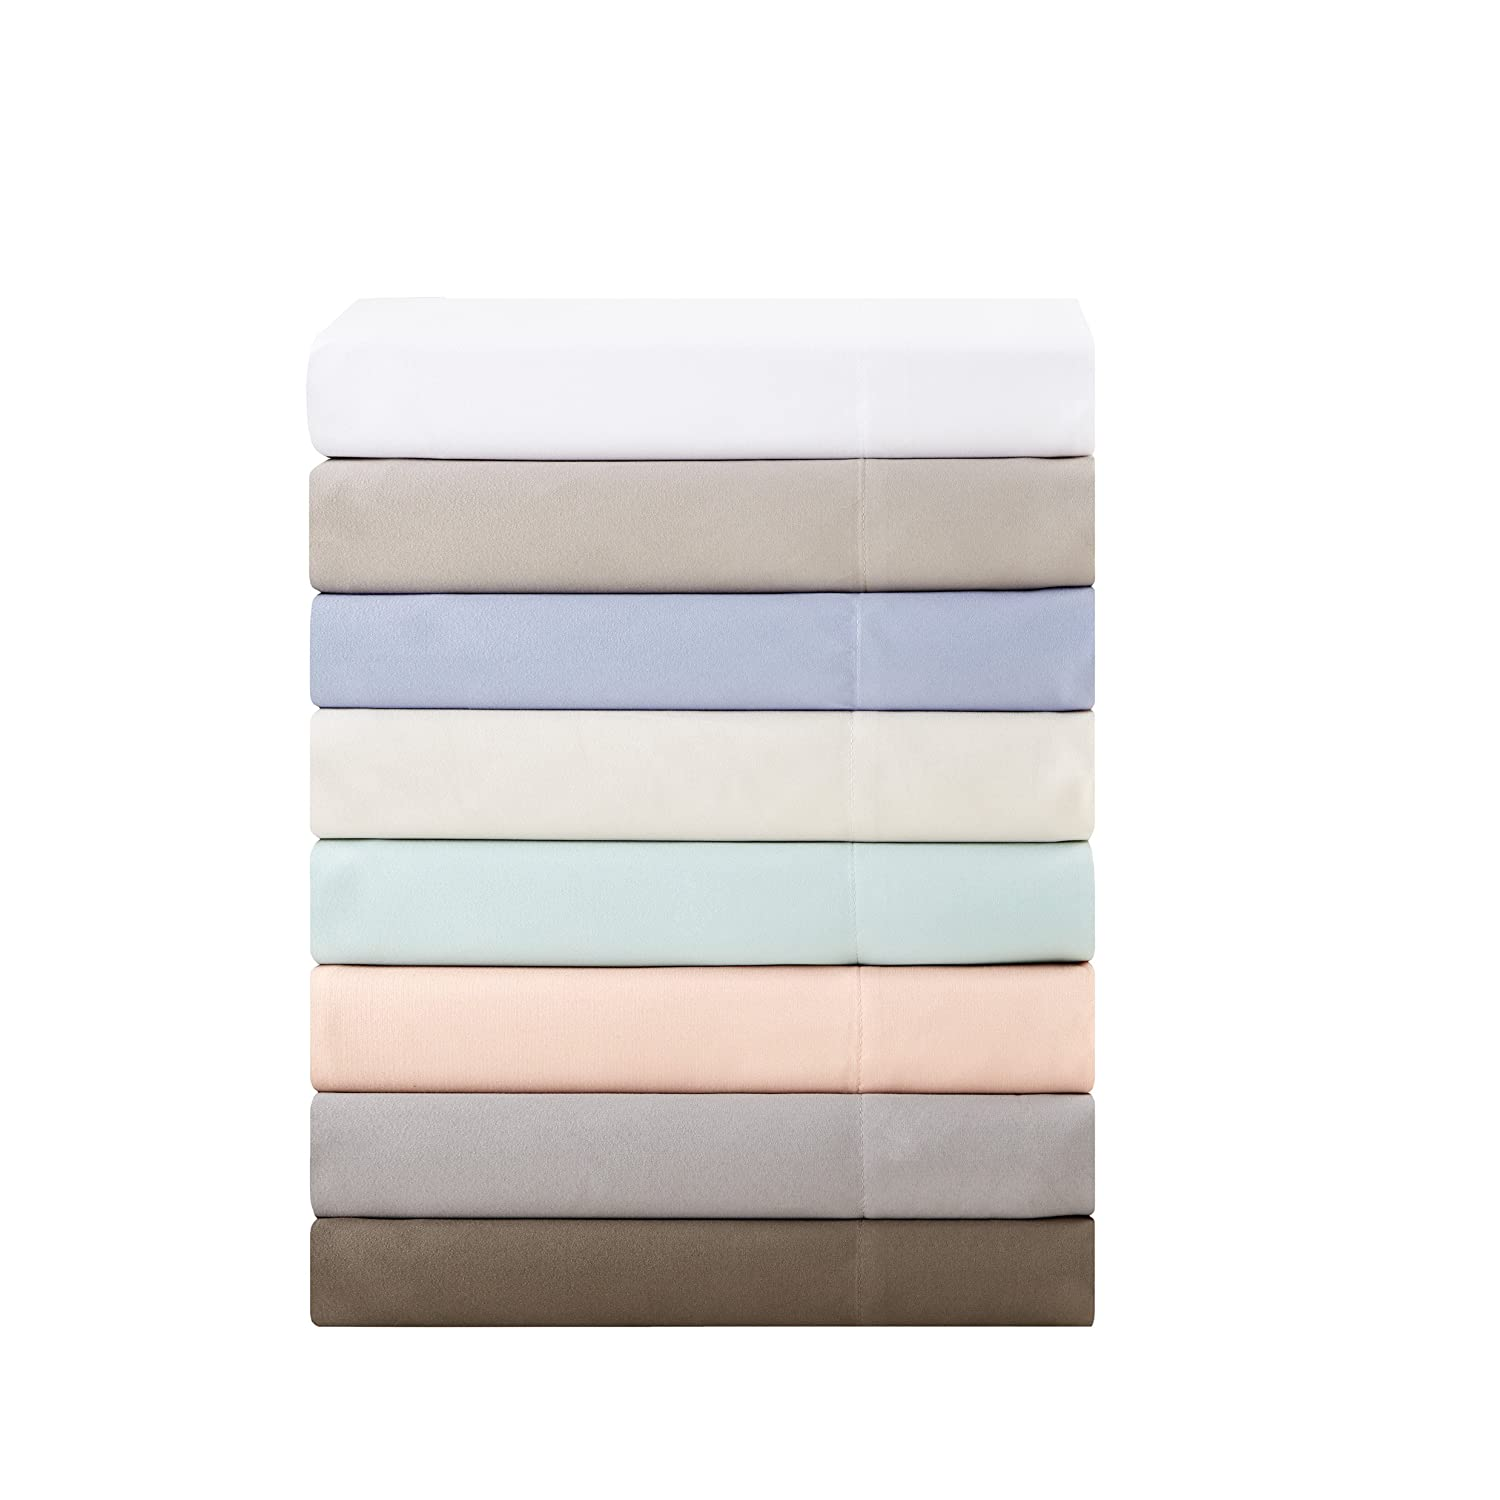 Madison Park 3M Microcell Twin Sheets Set, Casual Deep Pocket Bed Sheets, Ivory Microfiber Sheet Sets 3-Piece Include Flat Sheet, Fitted Sheet & 1 Pillowcase E&E Co. Ltd DBA JLA Home MP20-1180